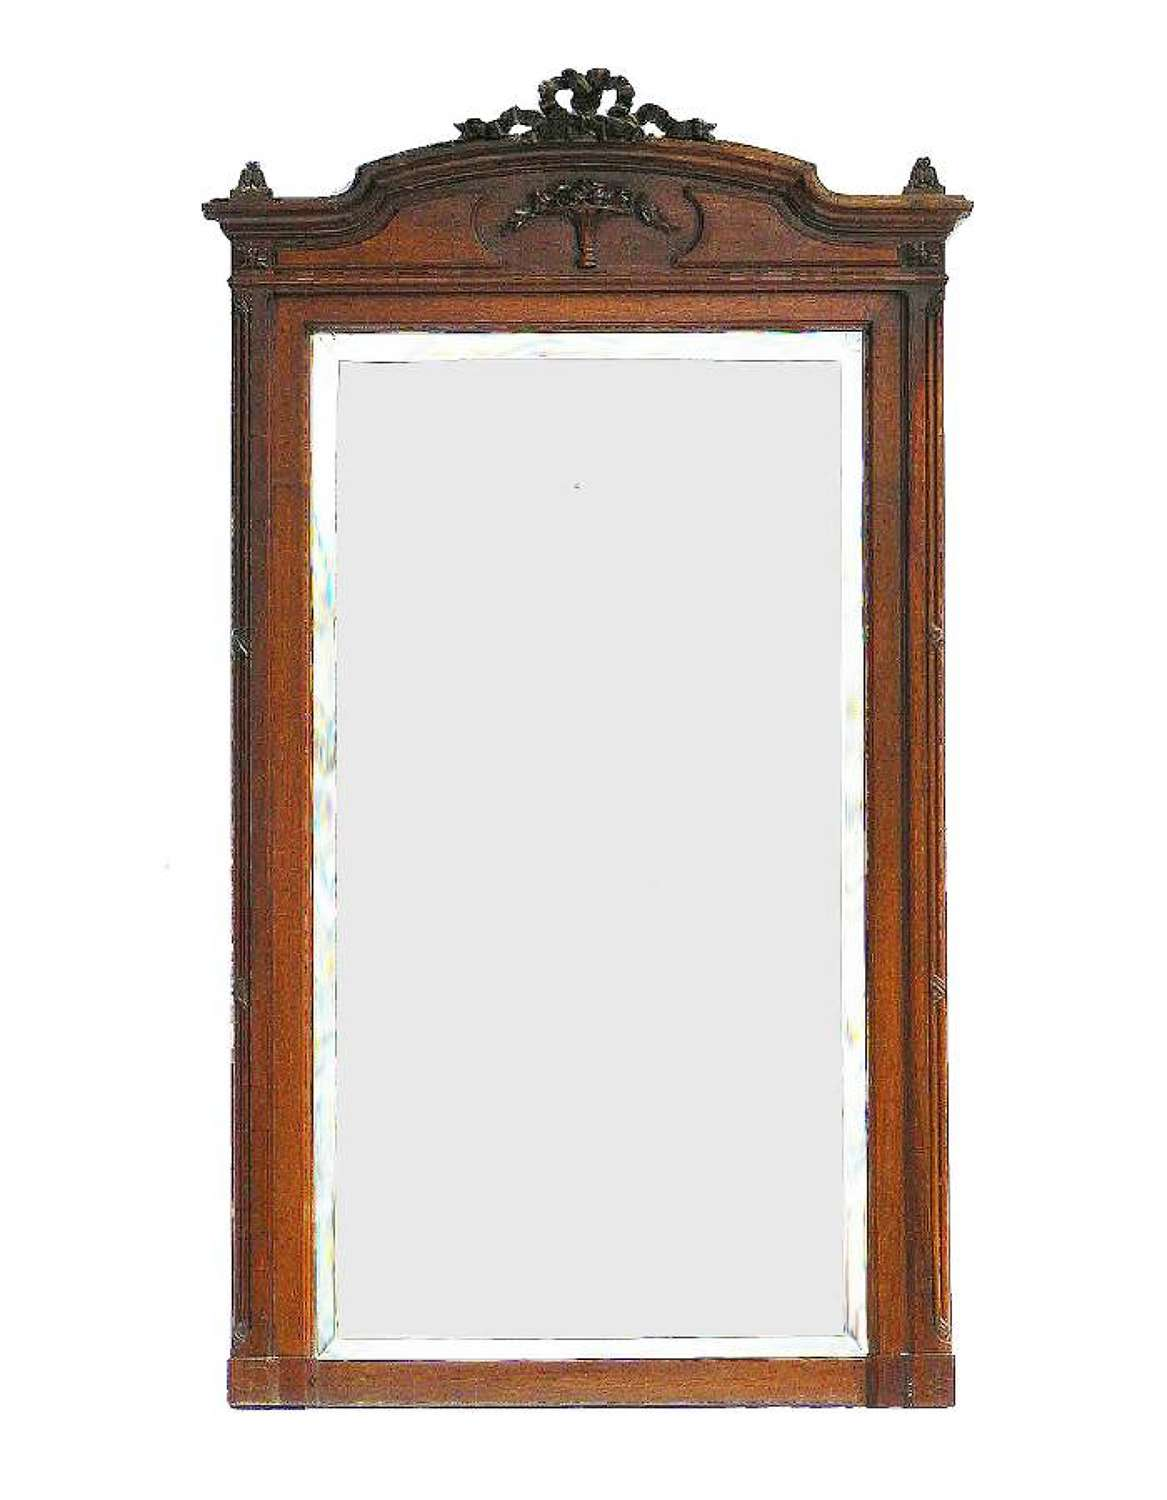 French Mirror Full Length or Overmantle 19th Century Louis XVI